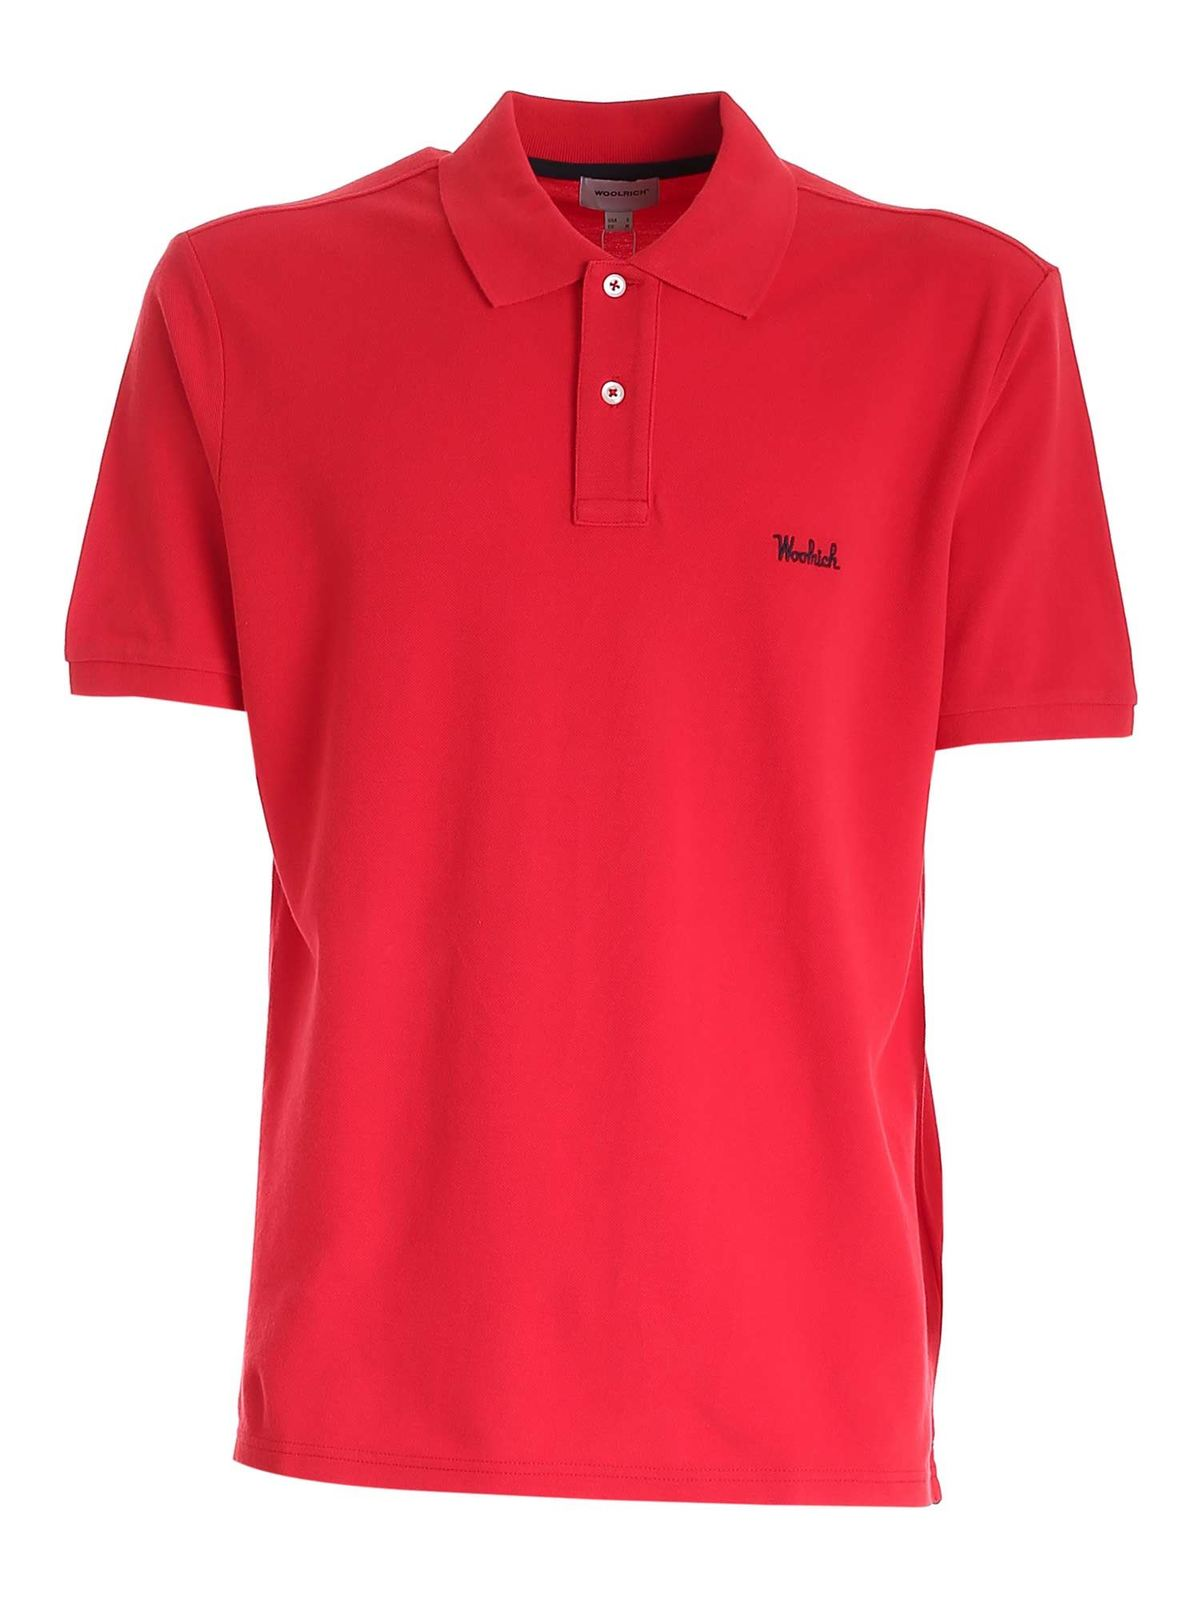 Woolrich Cottons LOGO EMBROIDERY POLO SHIRT IN RED